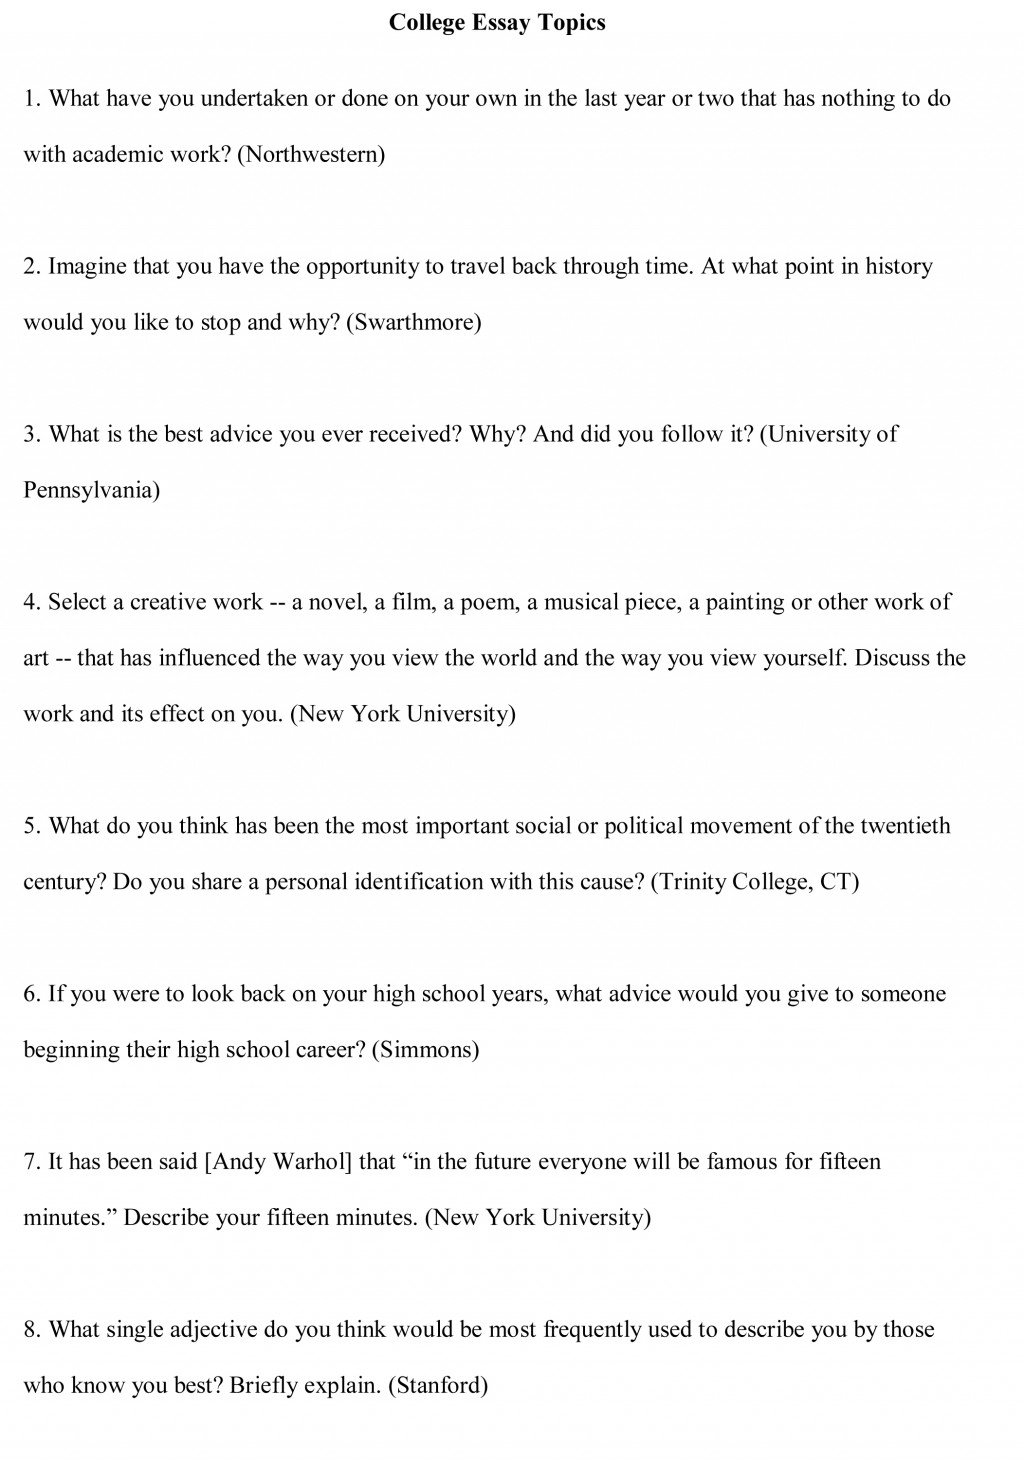 011 Essay Example College Topics Free Sample1 Ethical Argument Amazing Samples Examples Large